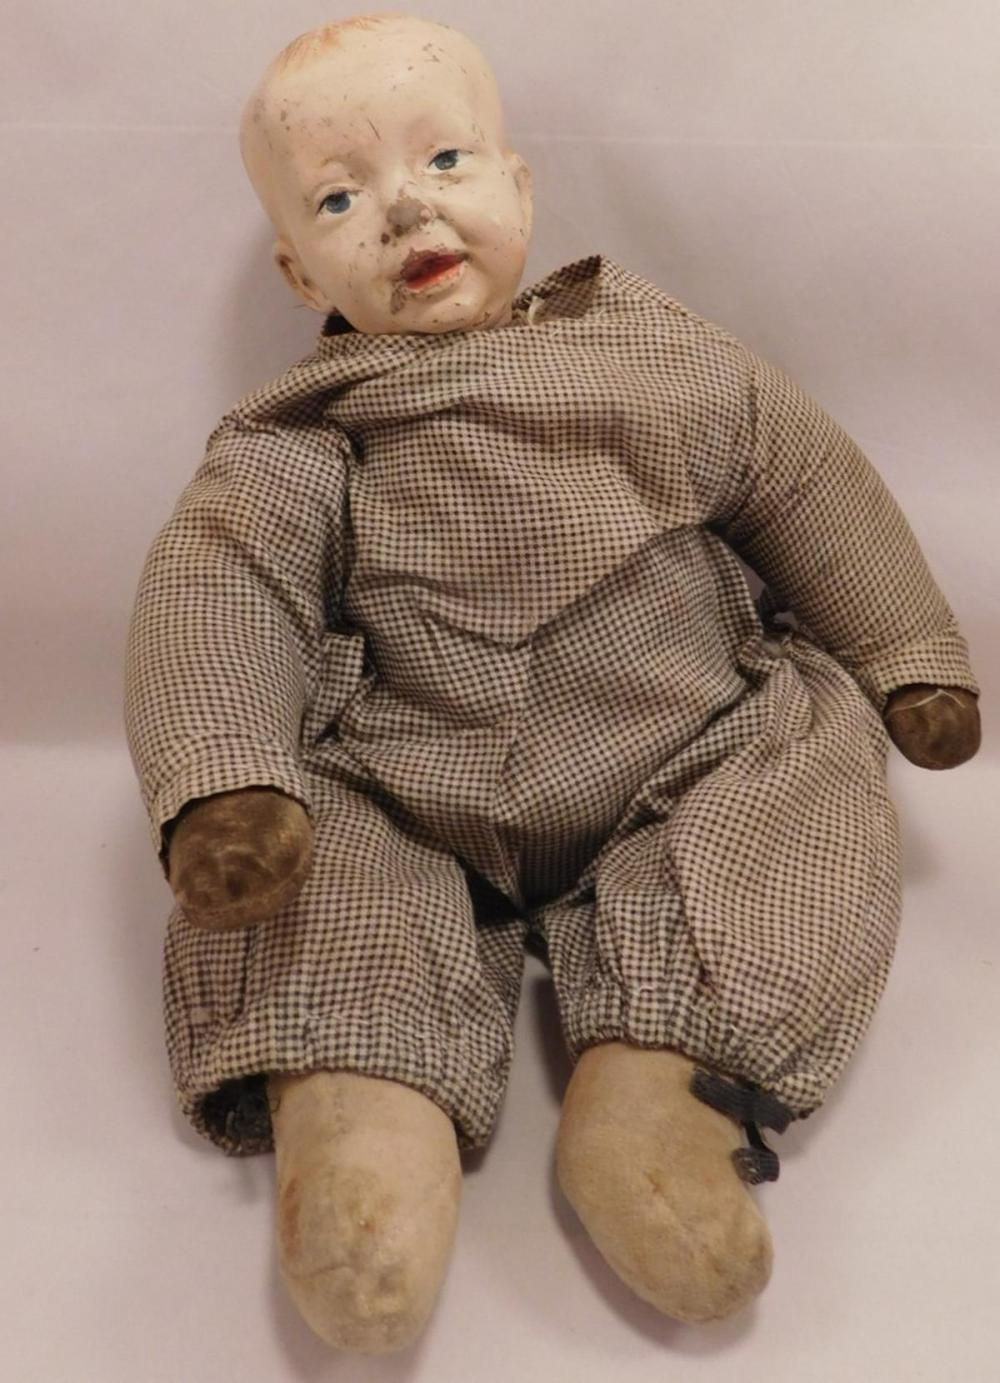 BABY BUMPS HORSMAN 1910 DOLL BISQUE GERMAN GERMANY VINTAGE ANTIQUE